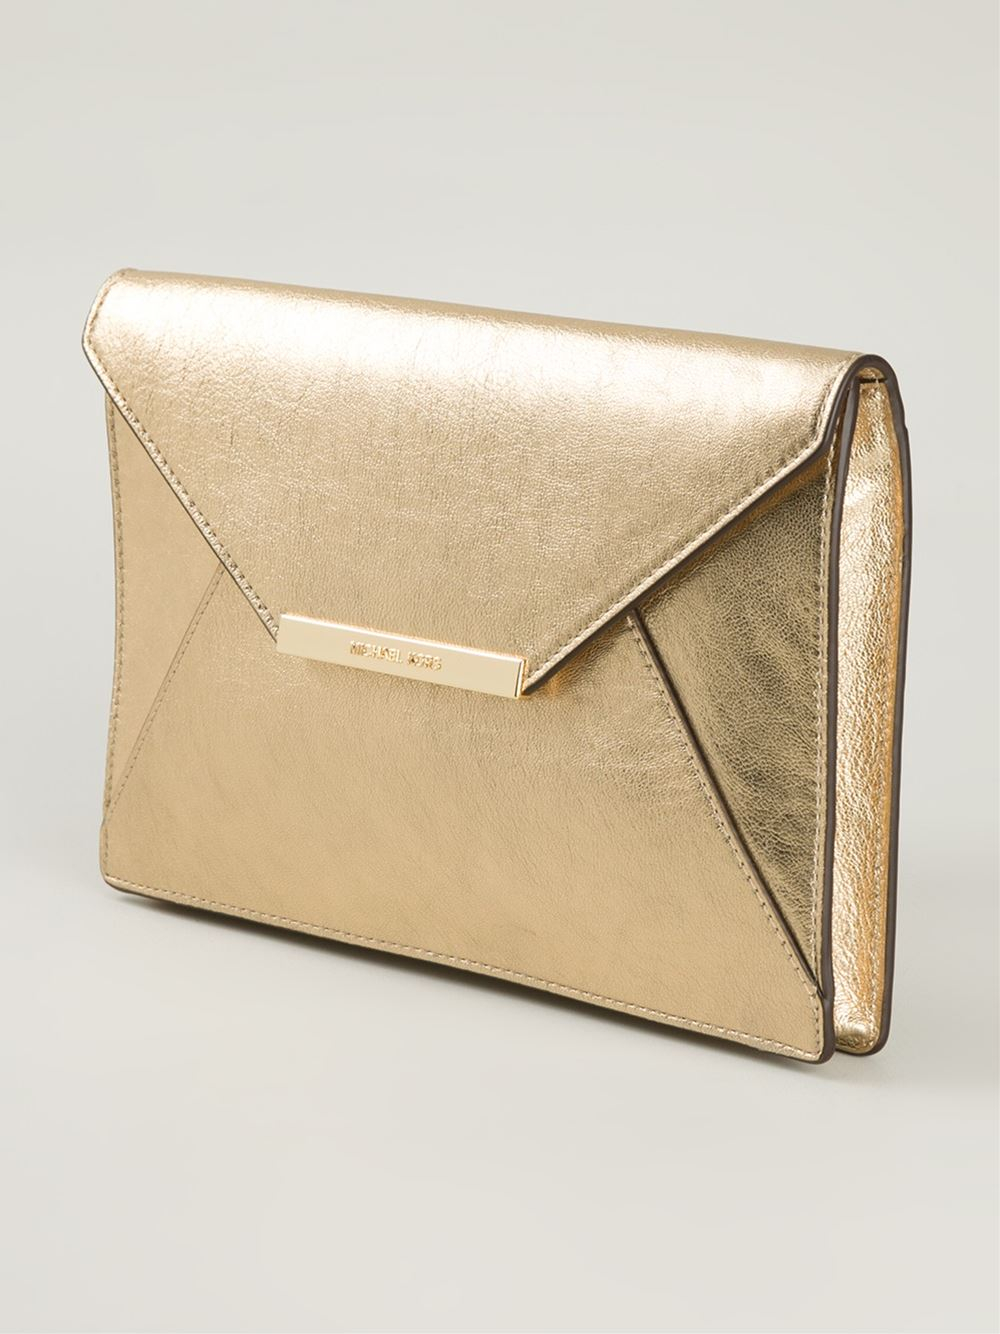 michael michael kors 39 lana 39 envelope clutch in gold metallic lyst. Black Bedroom Furniture Sets. Home Design Ideas